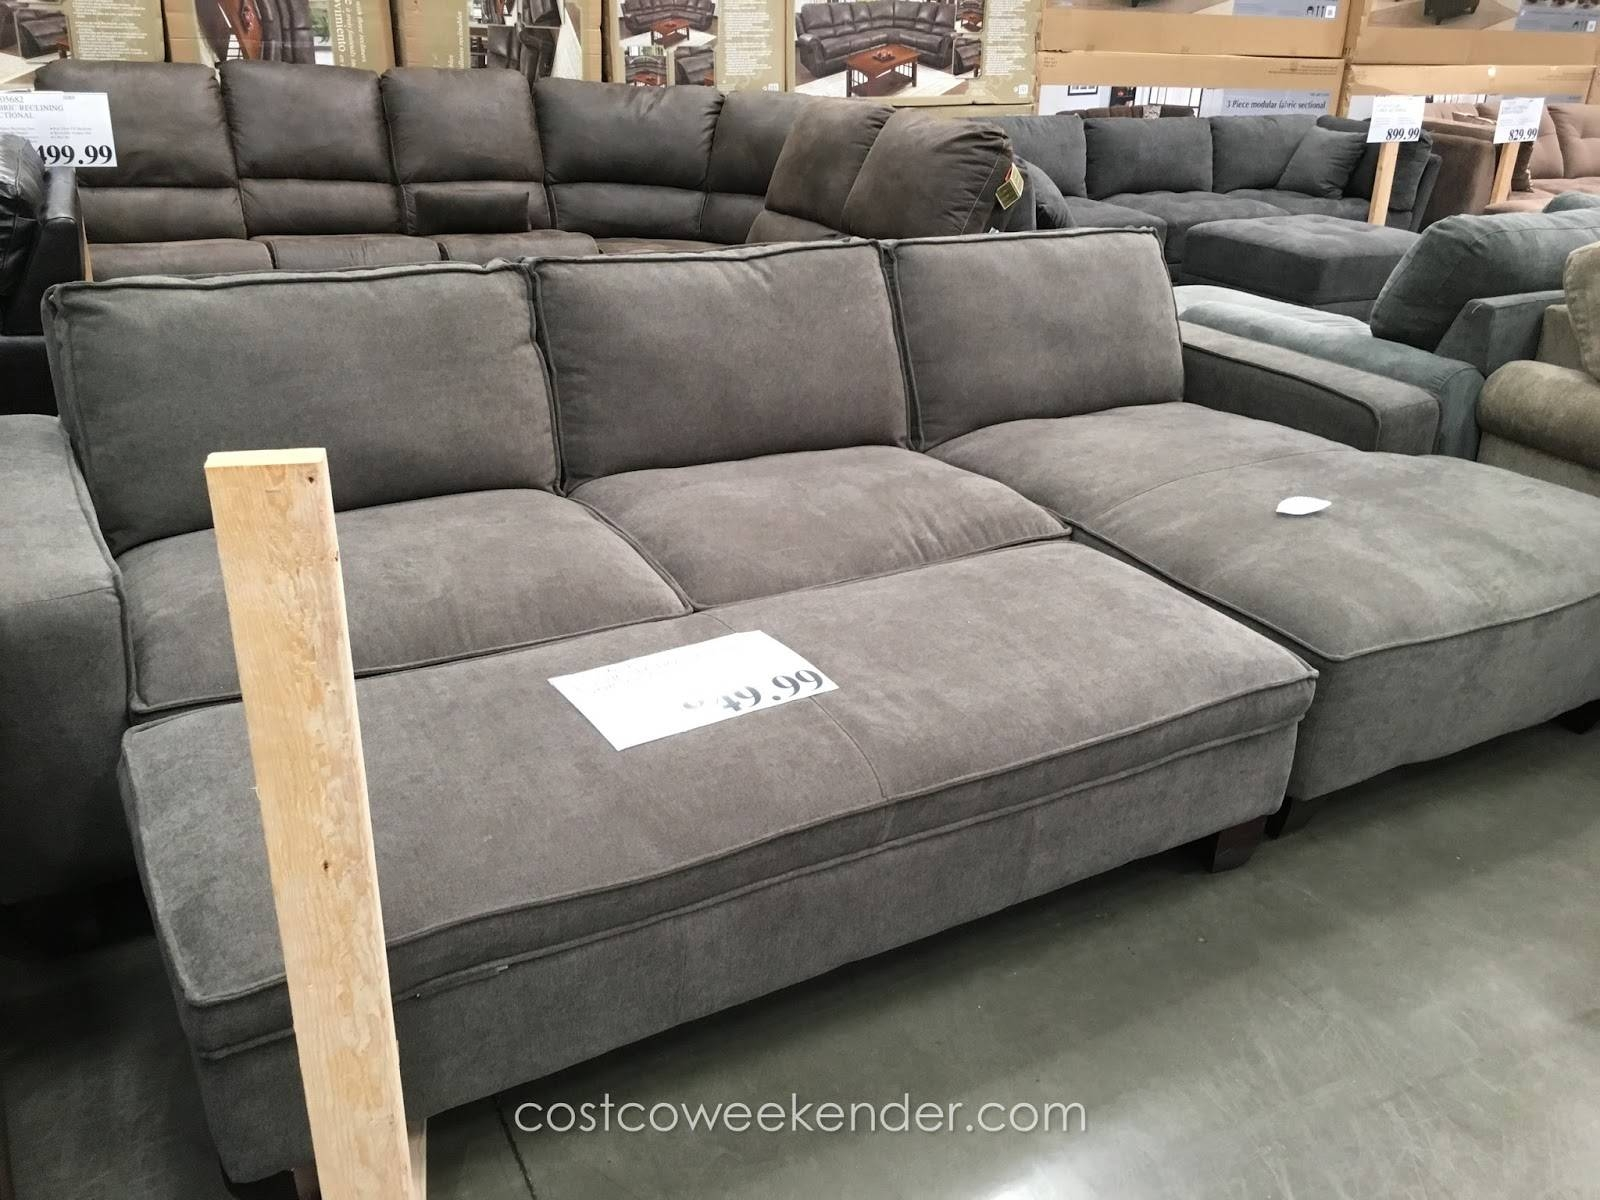 mckinley leather sofa costco inflatable chairs and sofas uk 2019 popular berkline sectional